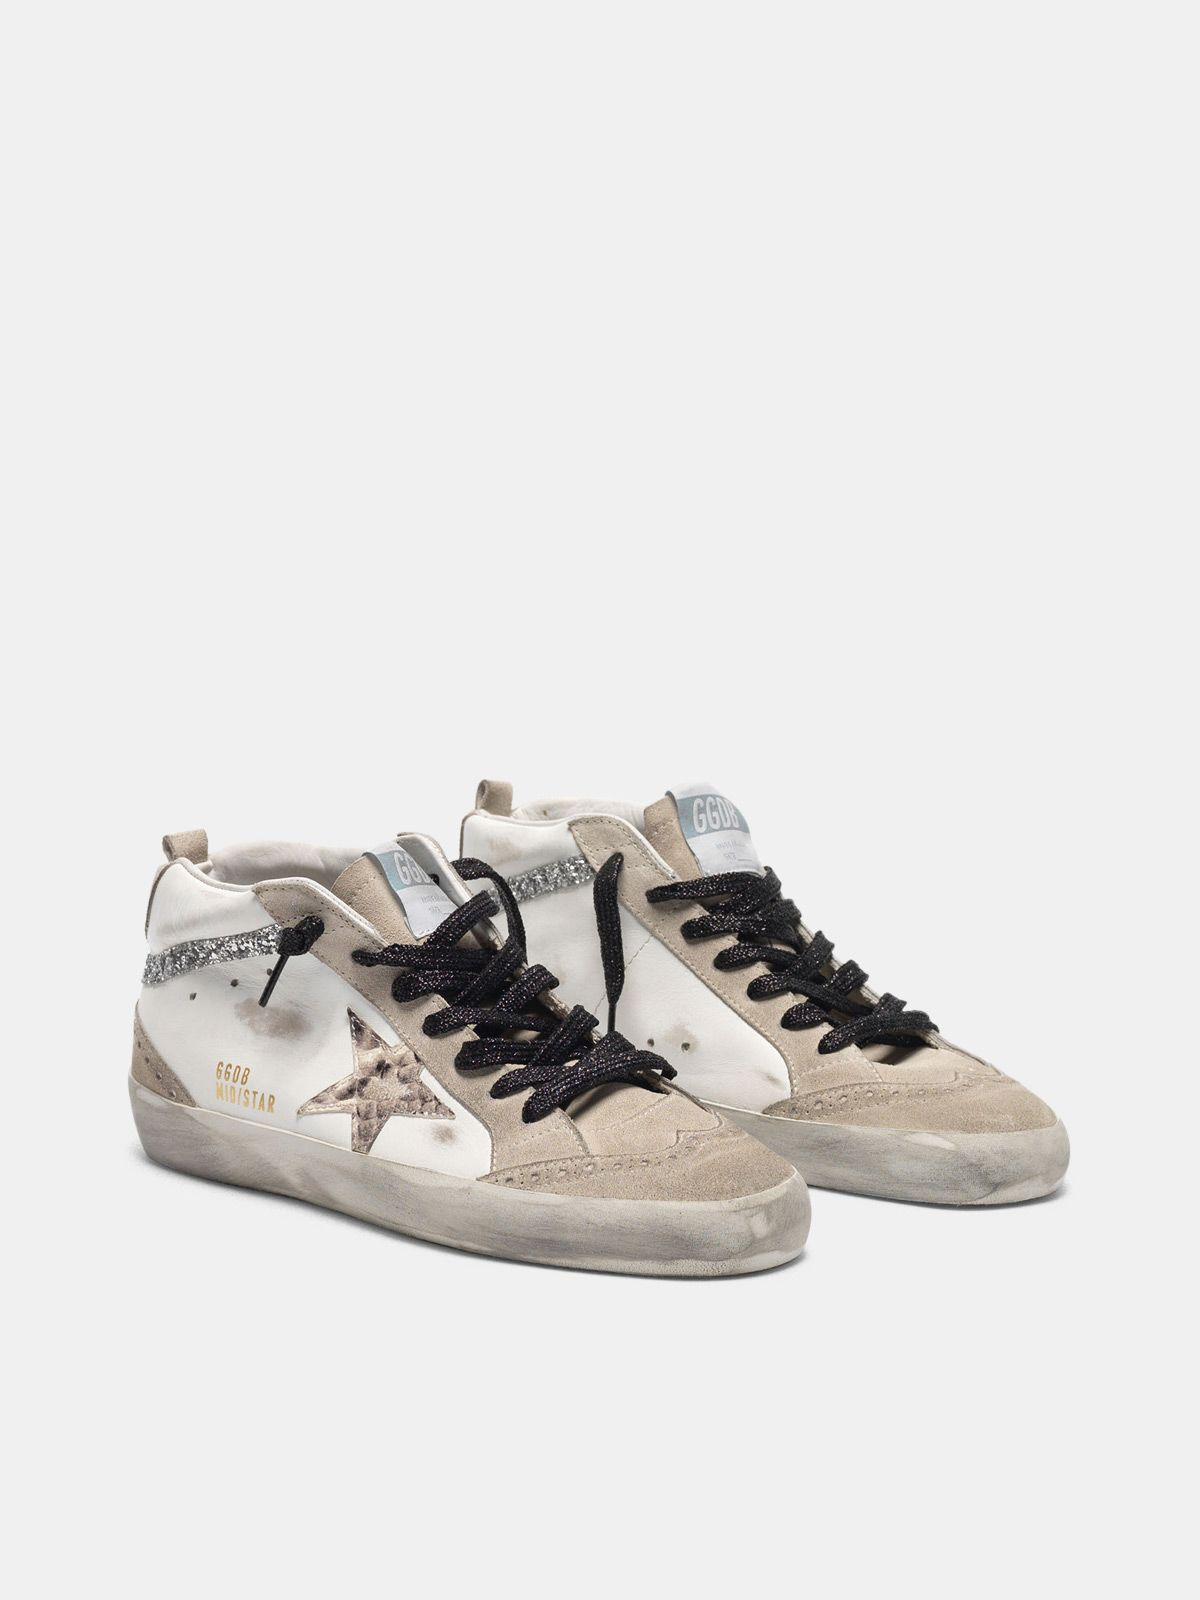 Golden Goose - Mid-Star sneakers in leather with snakeskin-print star and glitter inserts in